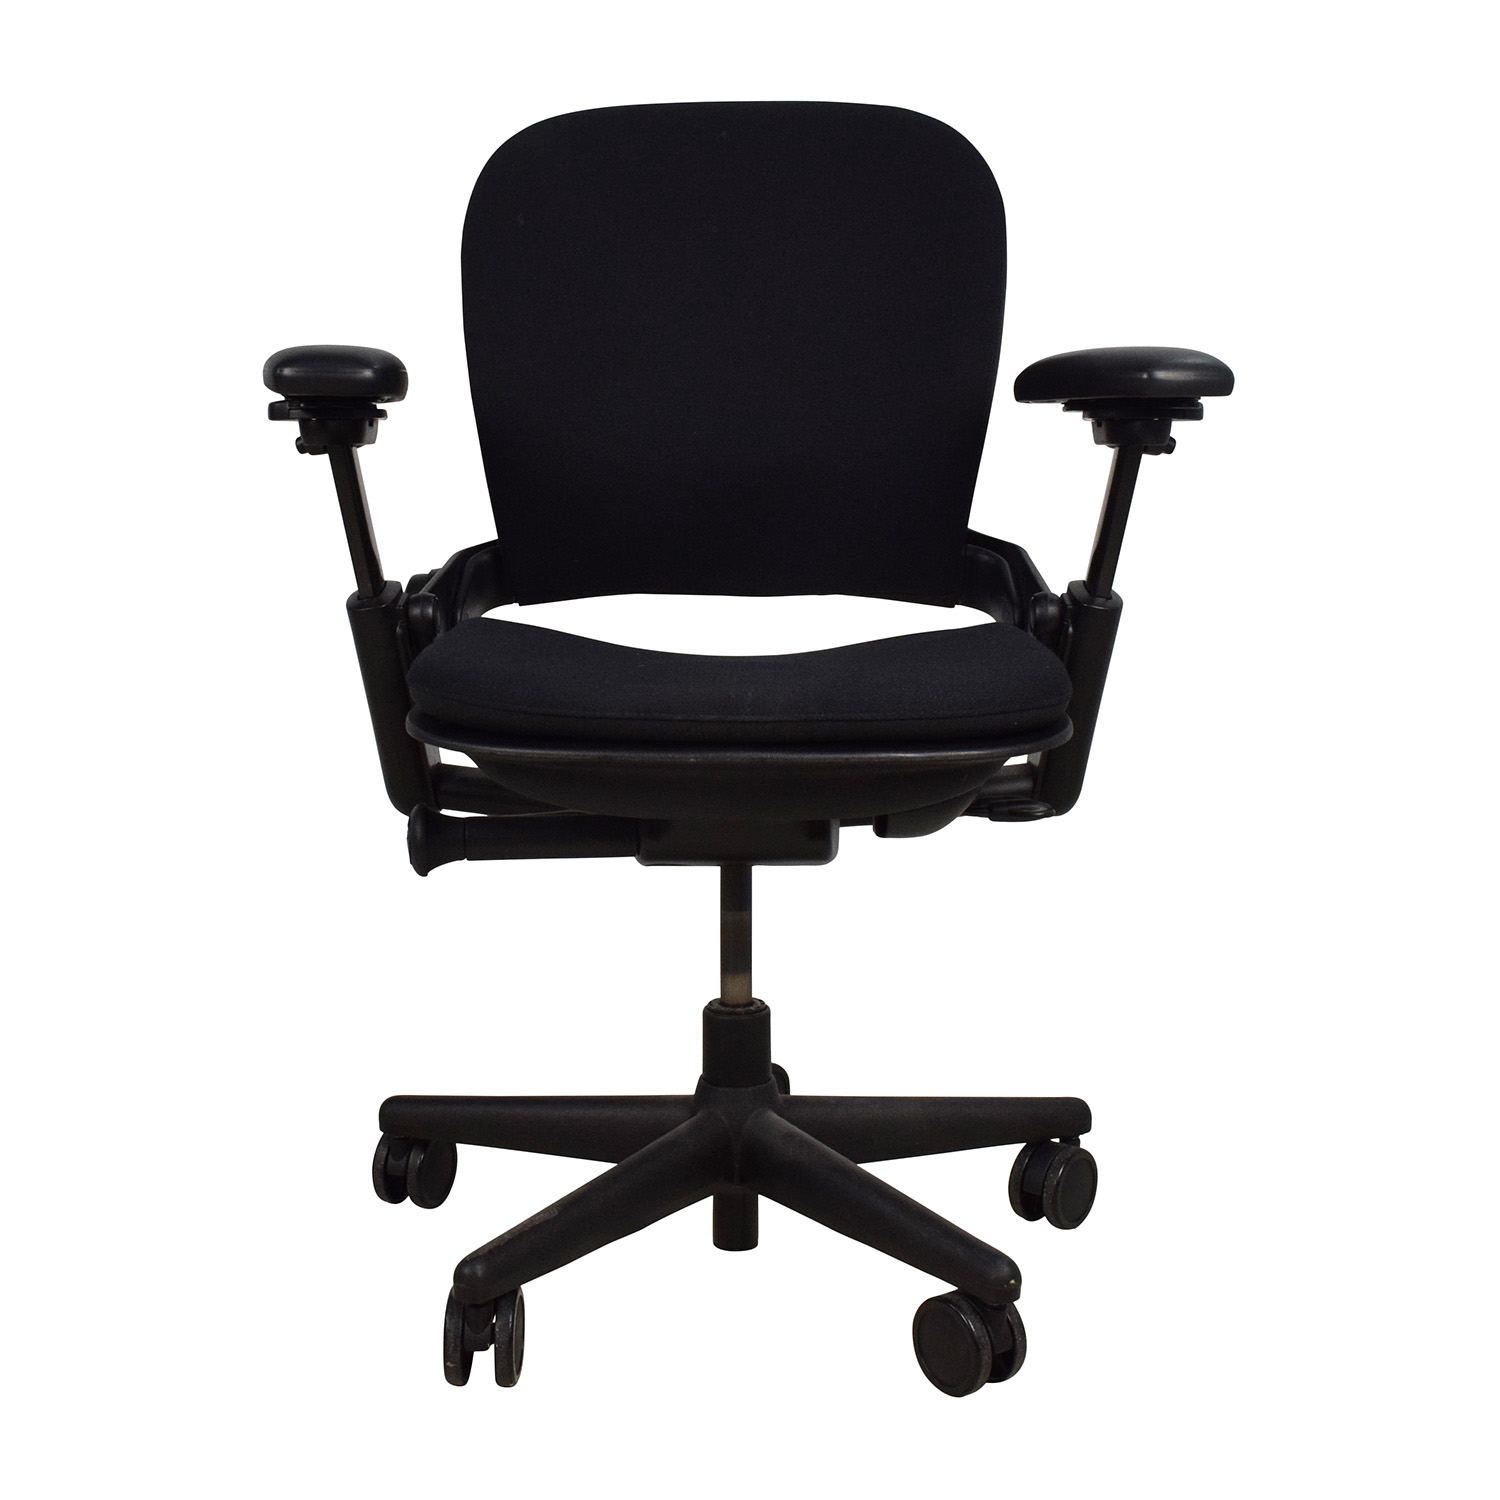 desk chair adjustable spa recliner 71 off black office chairs